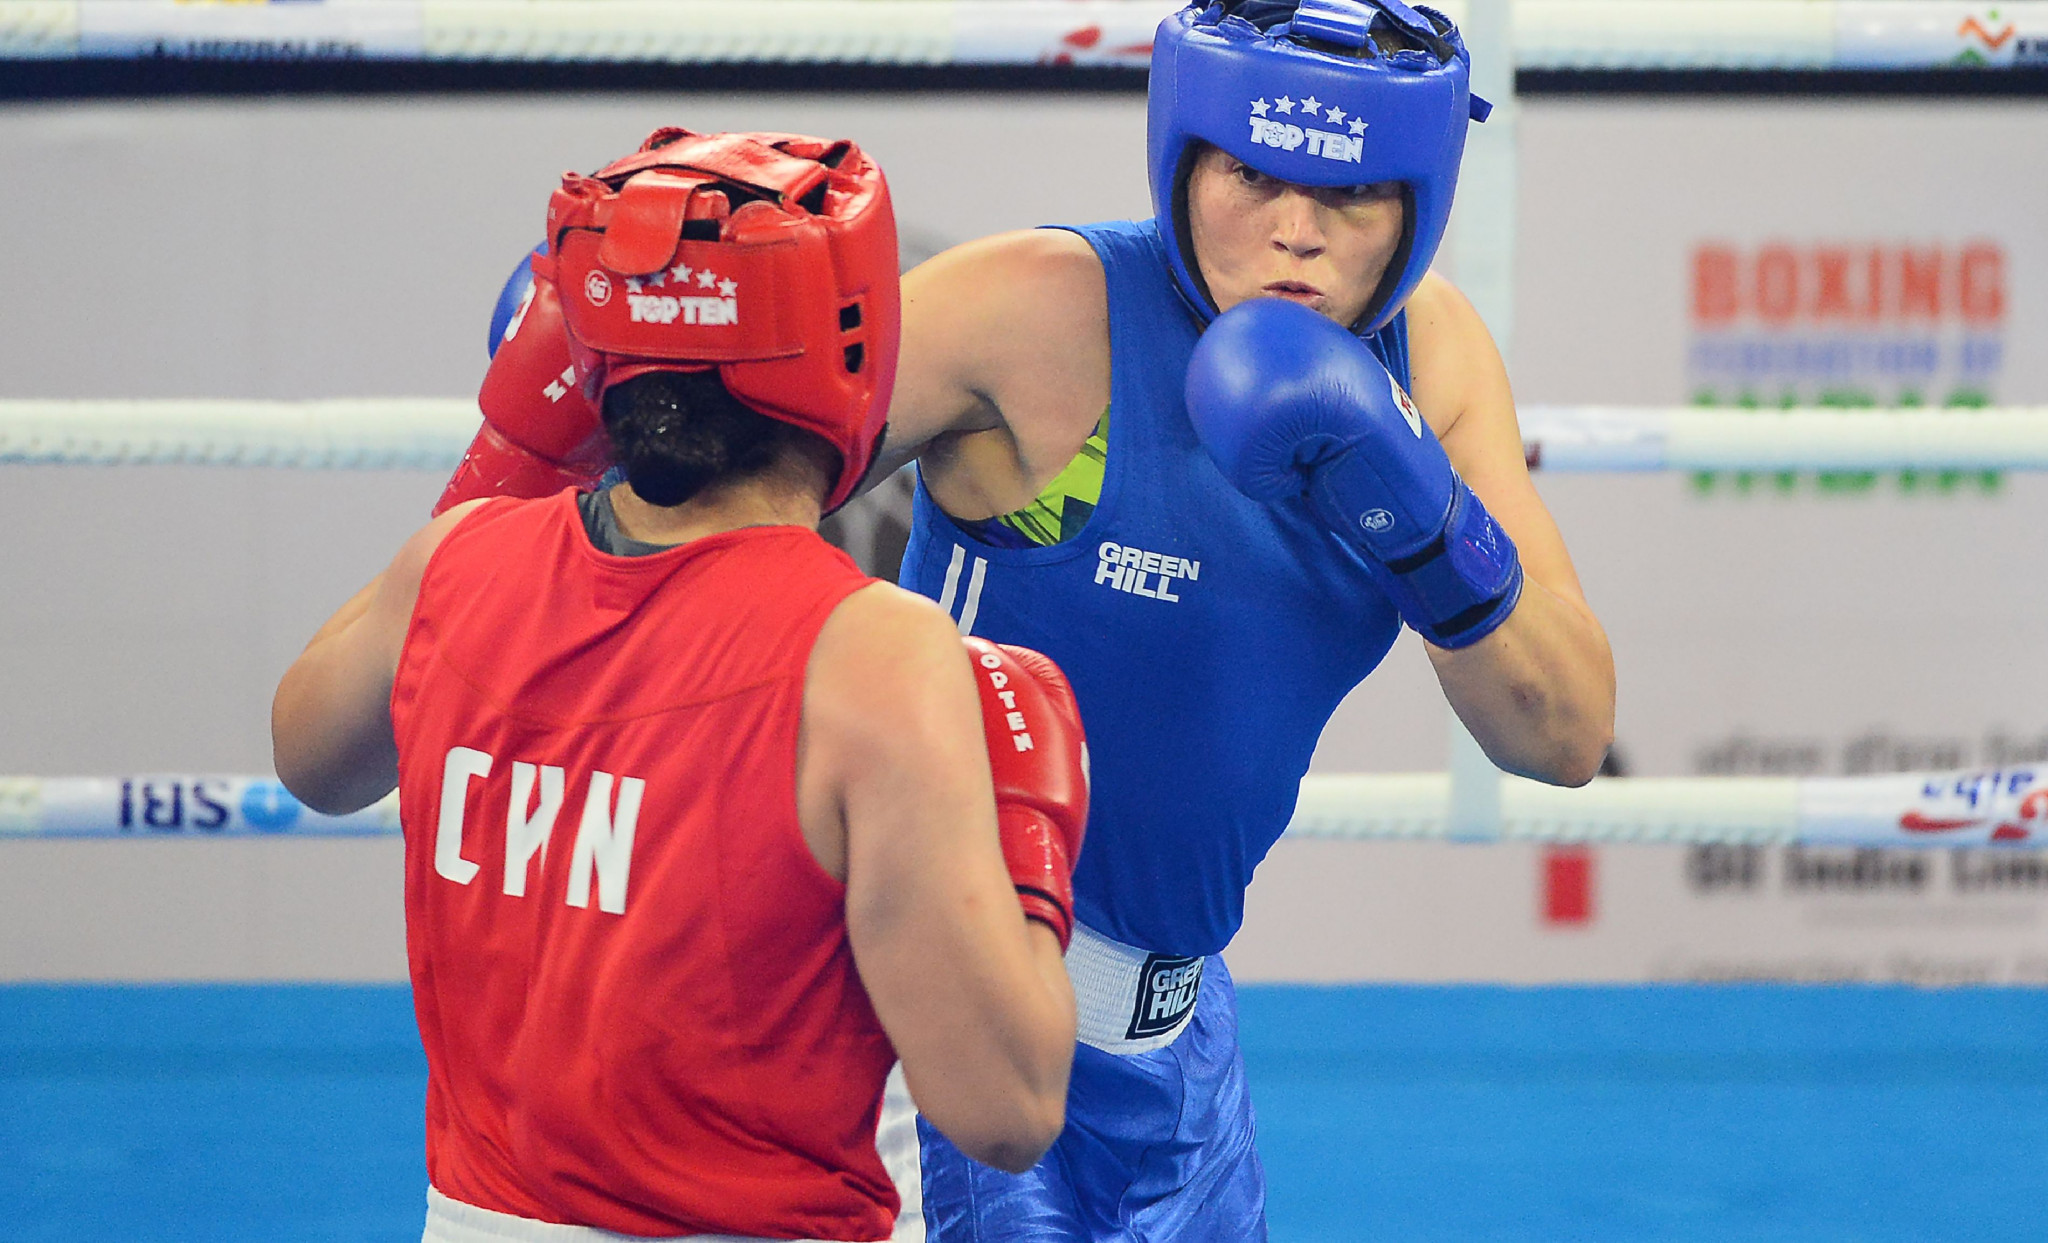 AIBA to organise training camp for boxers from Africa, Asia and the Americas in Russia in July